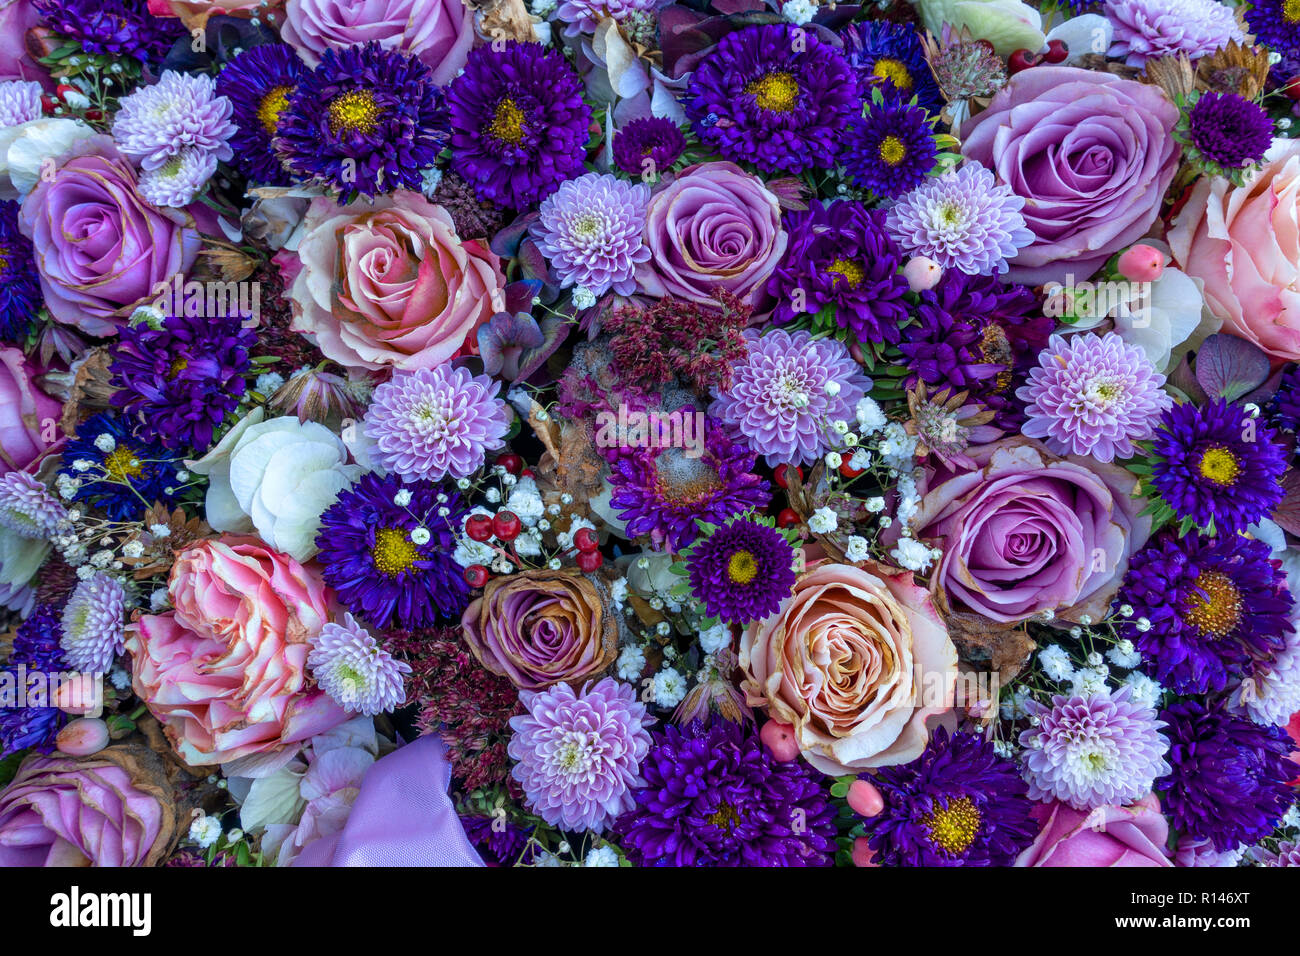 Slightly withered purple flower arrangement - Stock Image